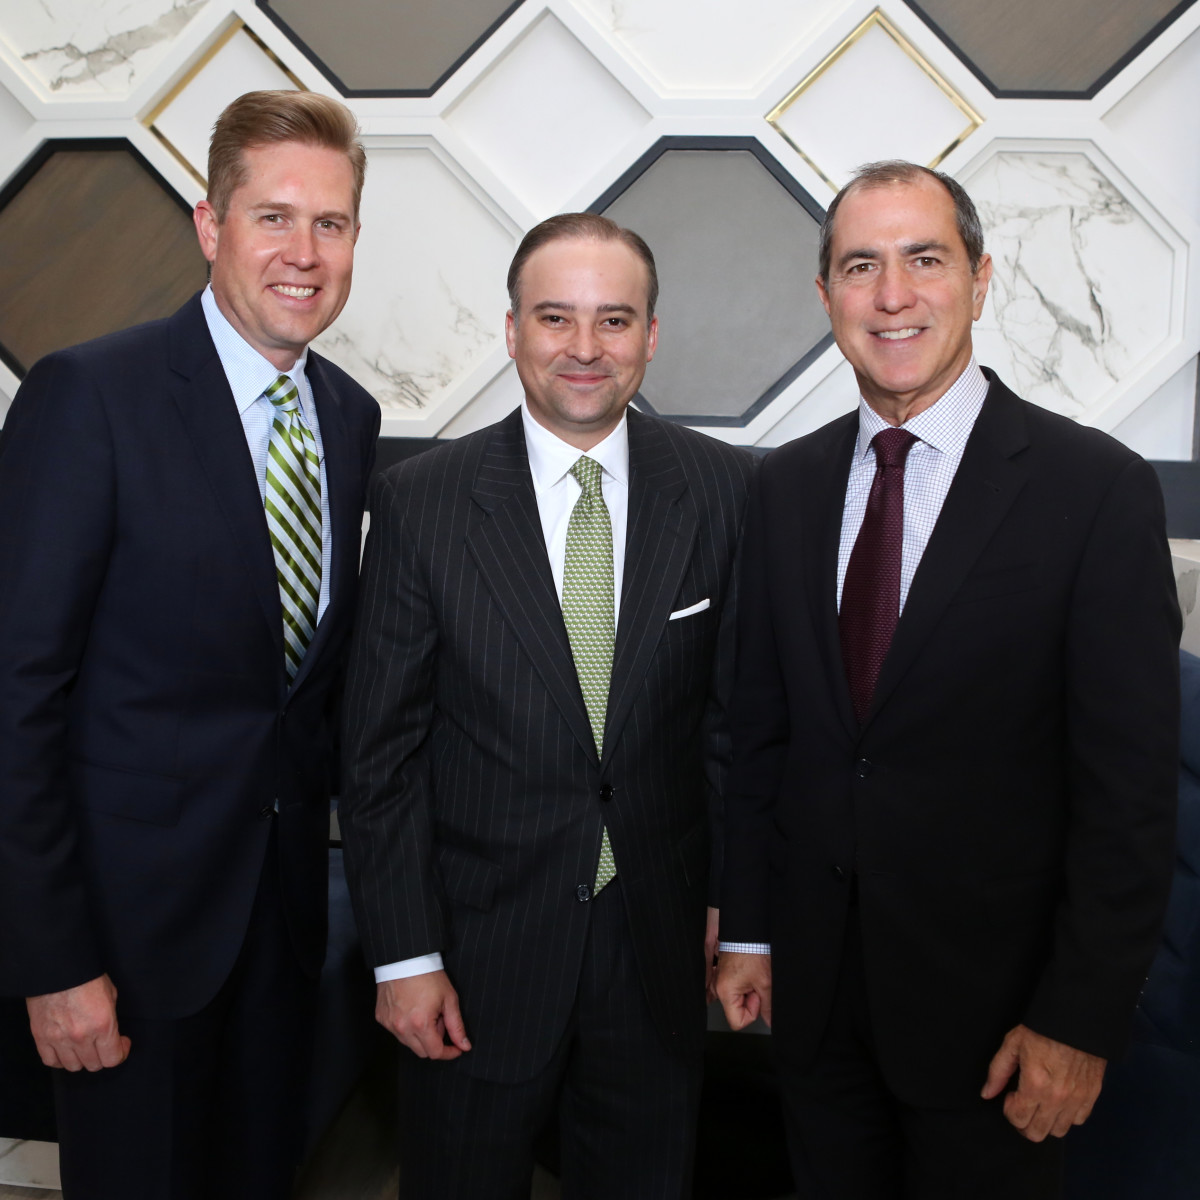 Saks MD Anderson benefit 4/16, John , Zack Fertitta and Grant